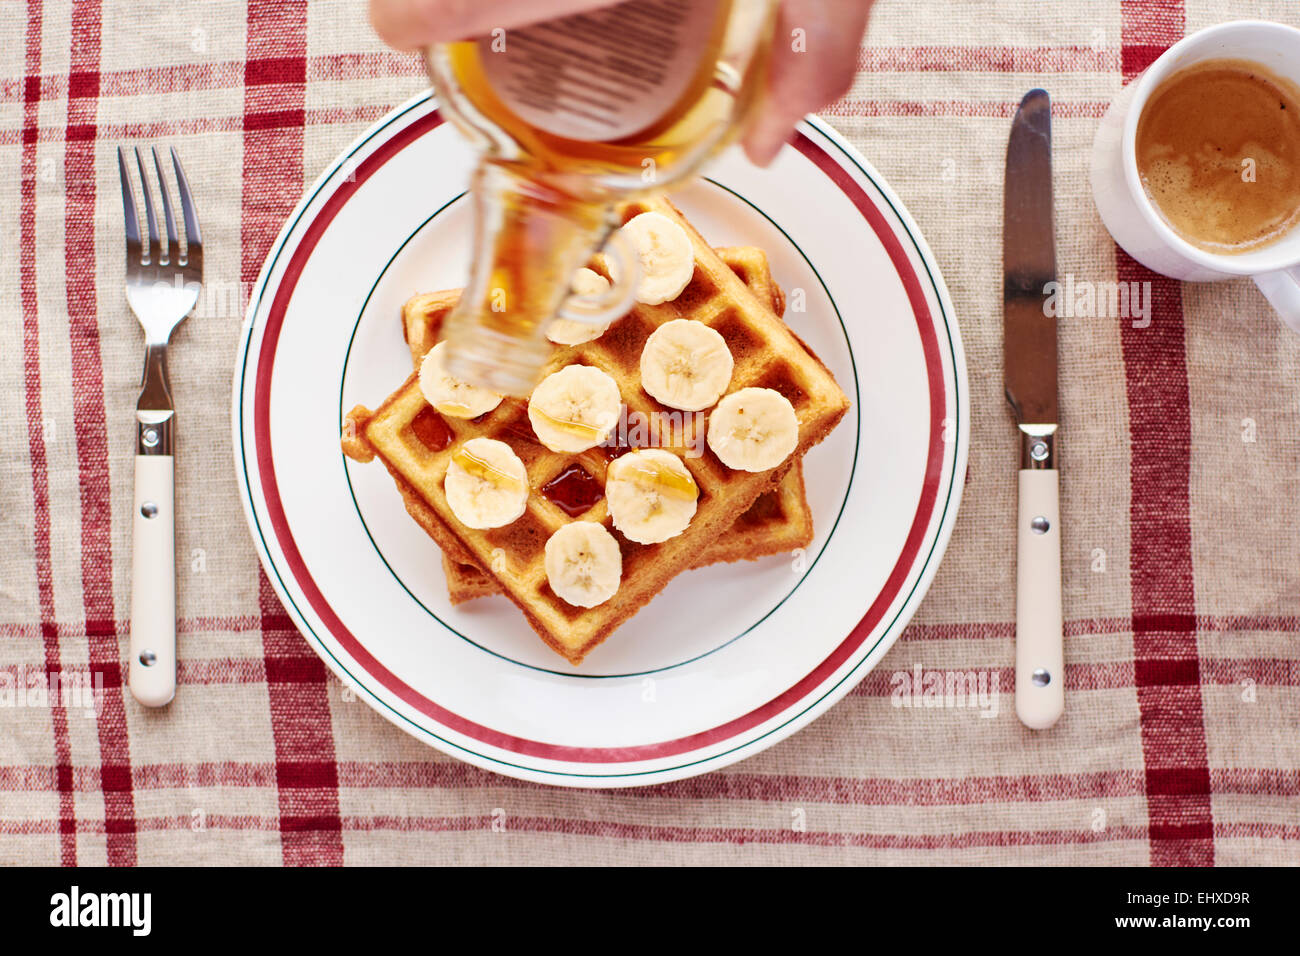 Quinoa waffles with banana slices and maple syrup - Stock Image